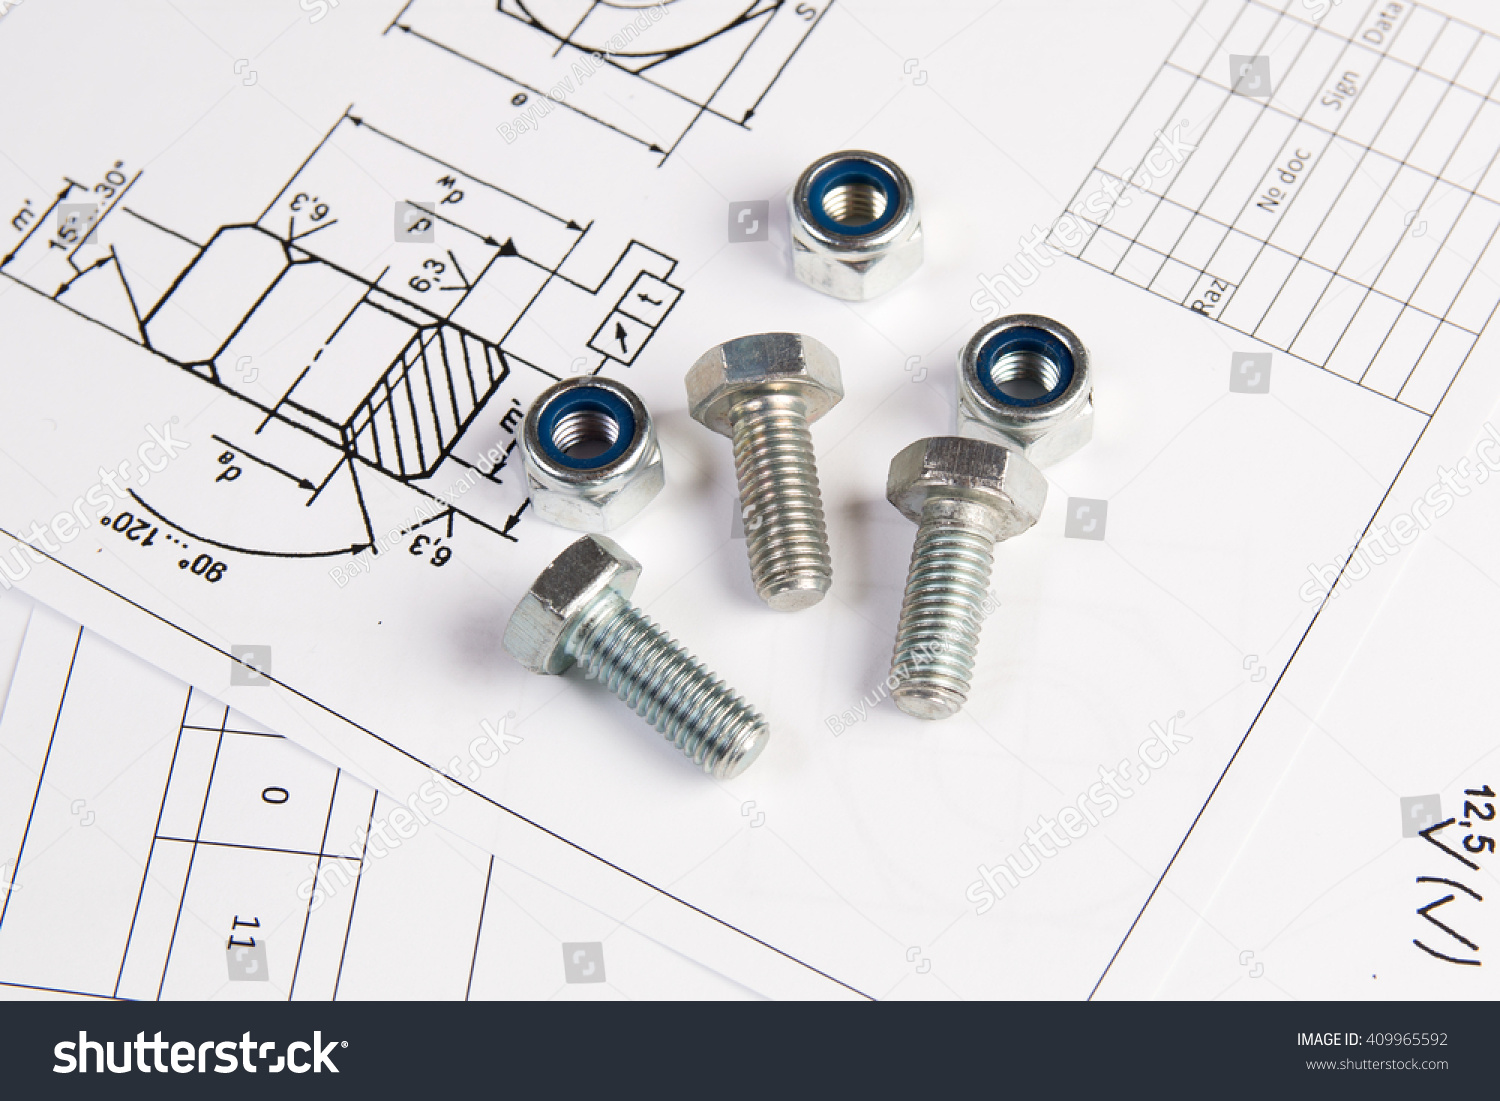 Engineering Drawings Metal Nuts And Bolts Science